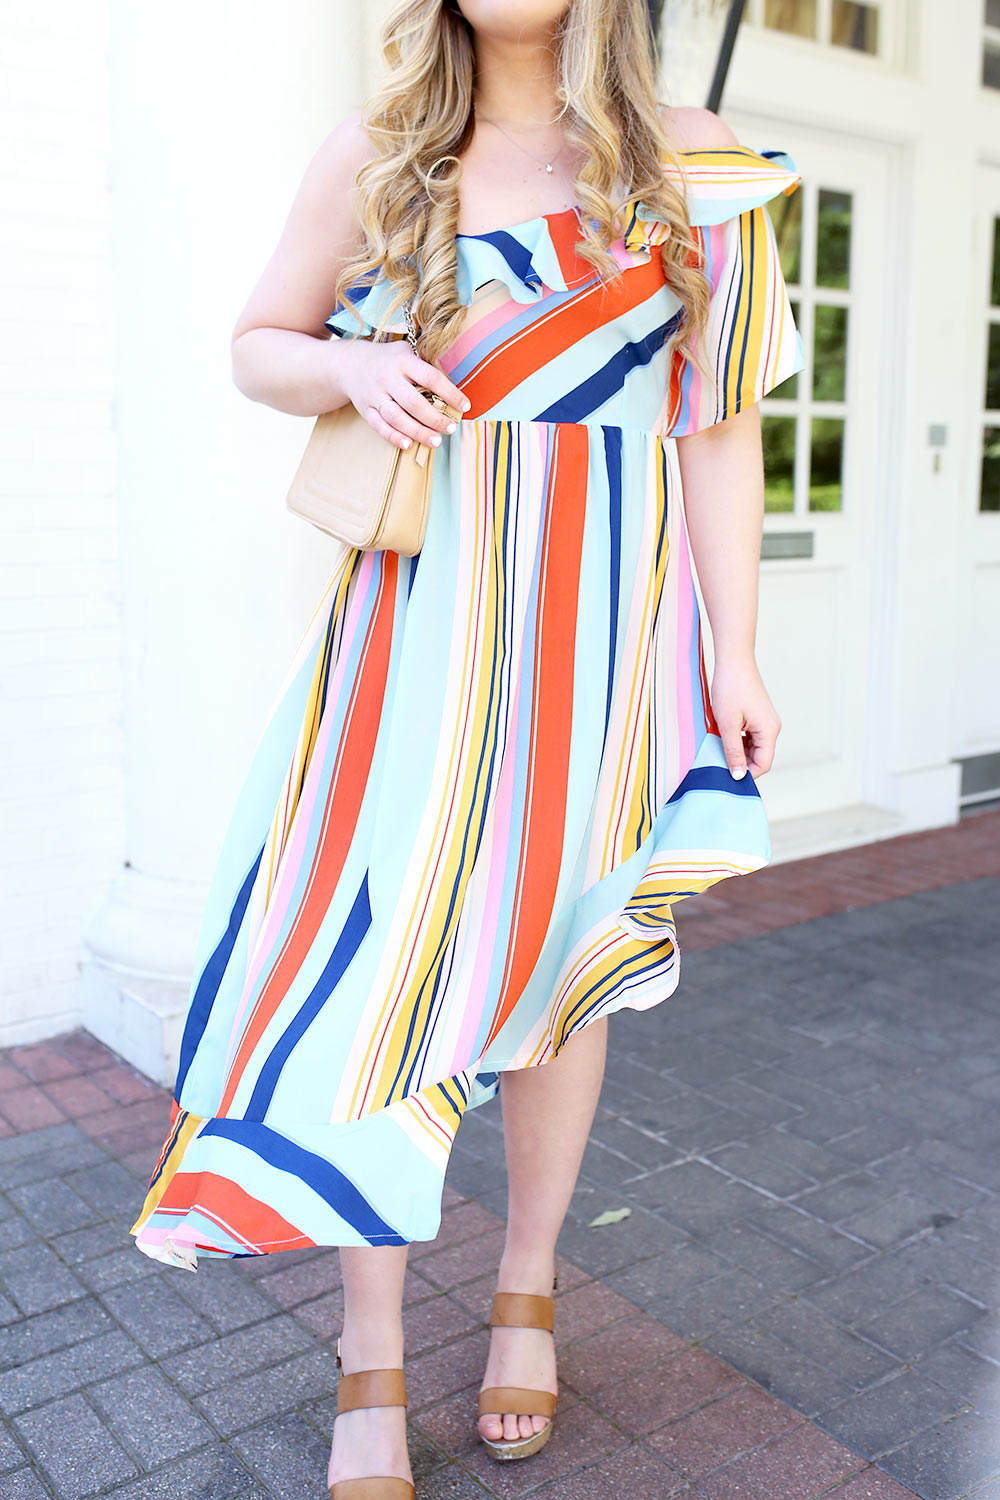 Colorful Dresses For Spring And Summer Events By Cameron